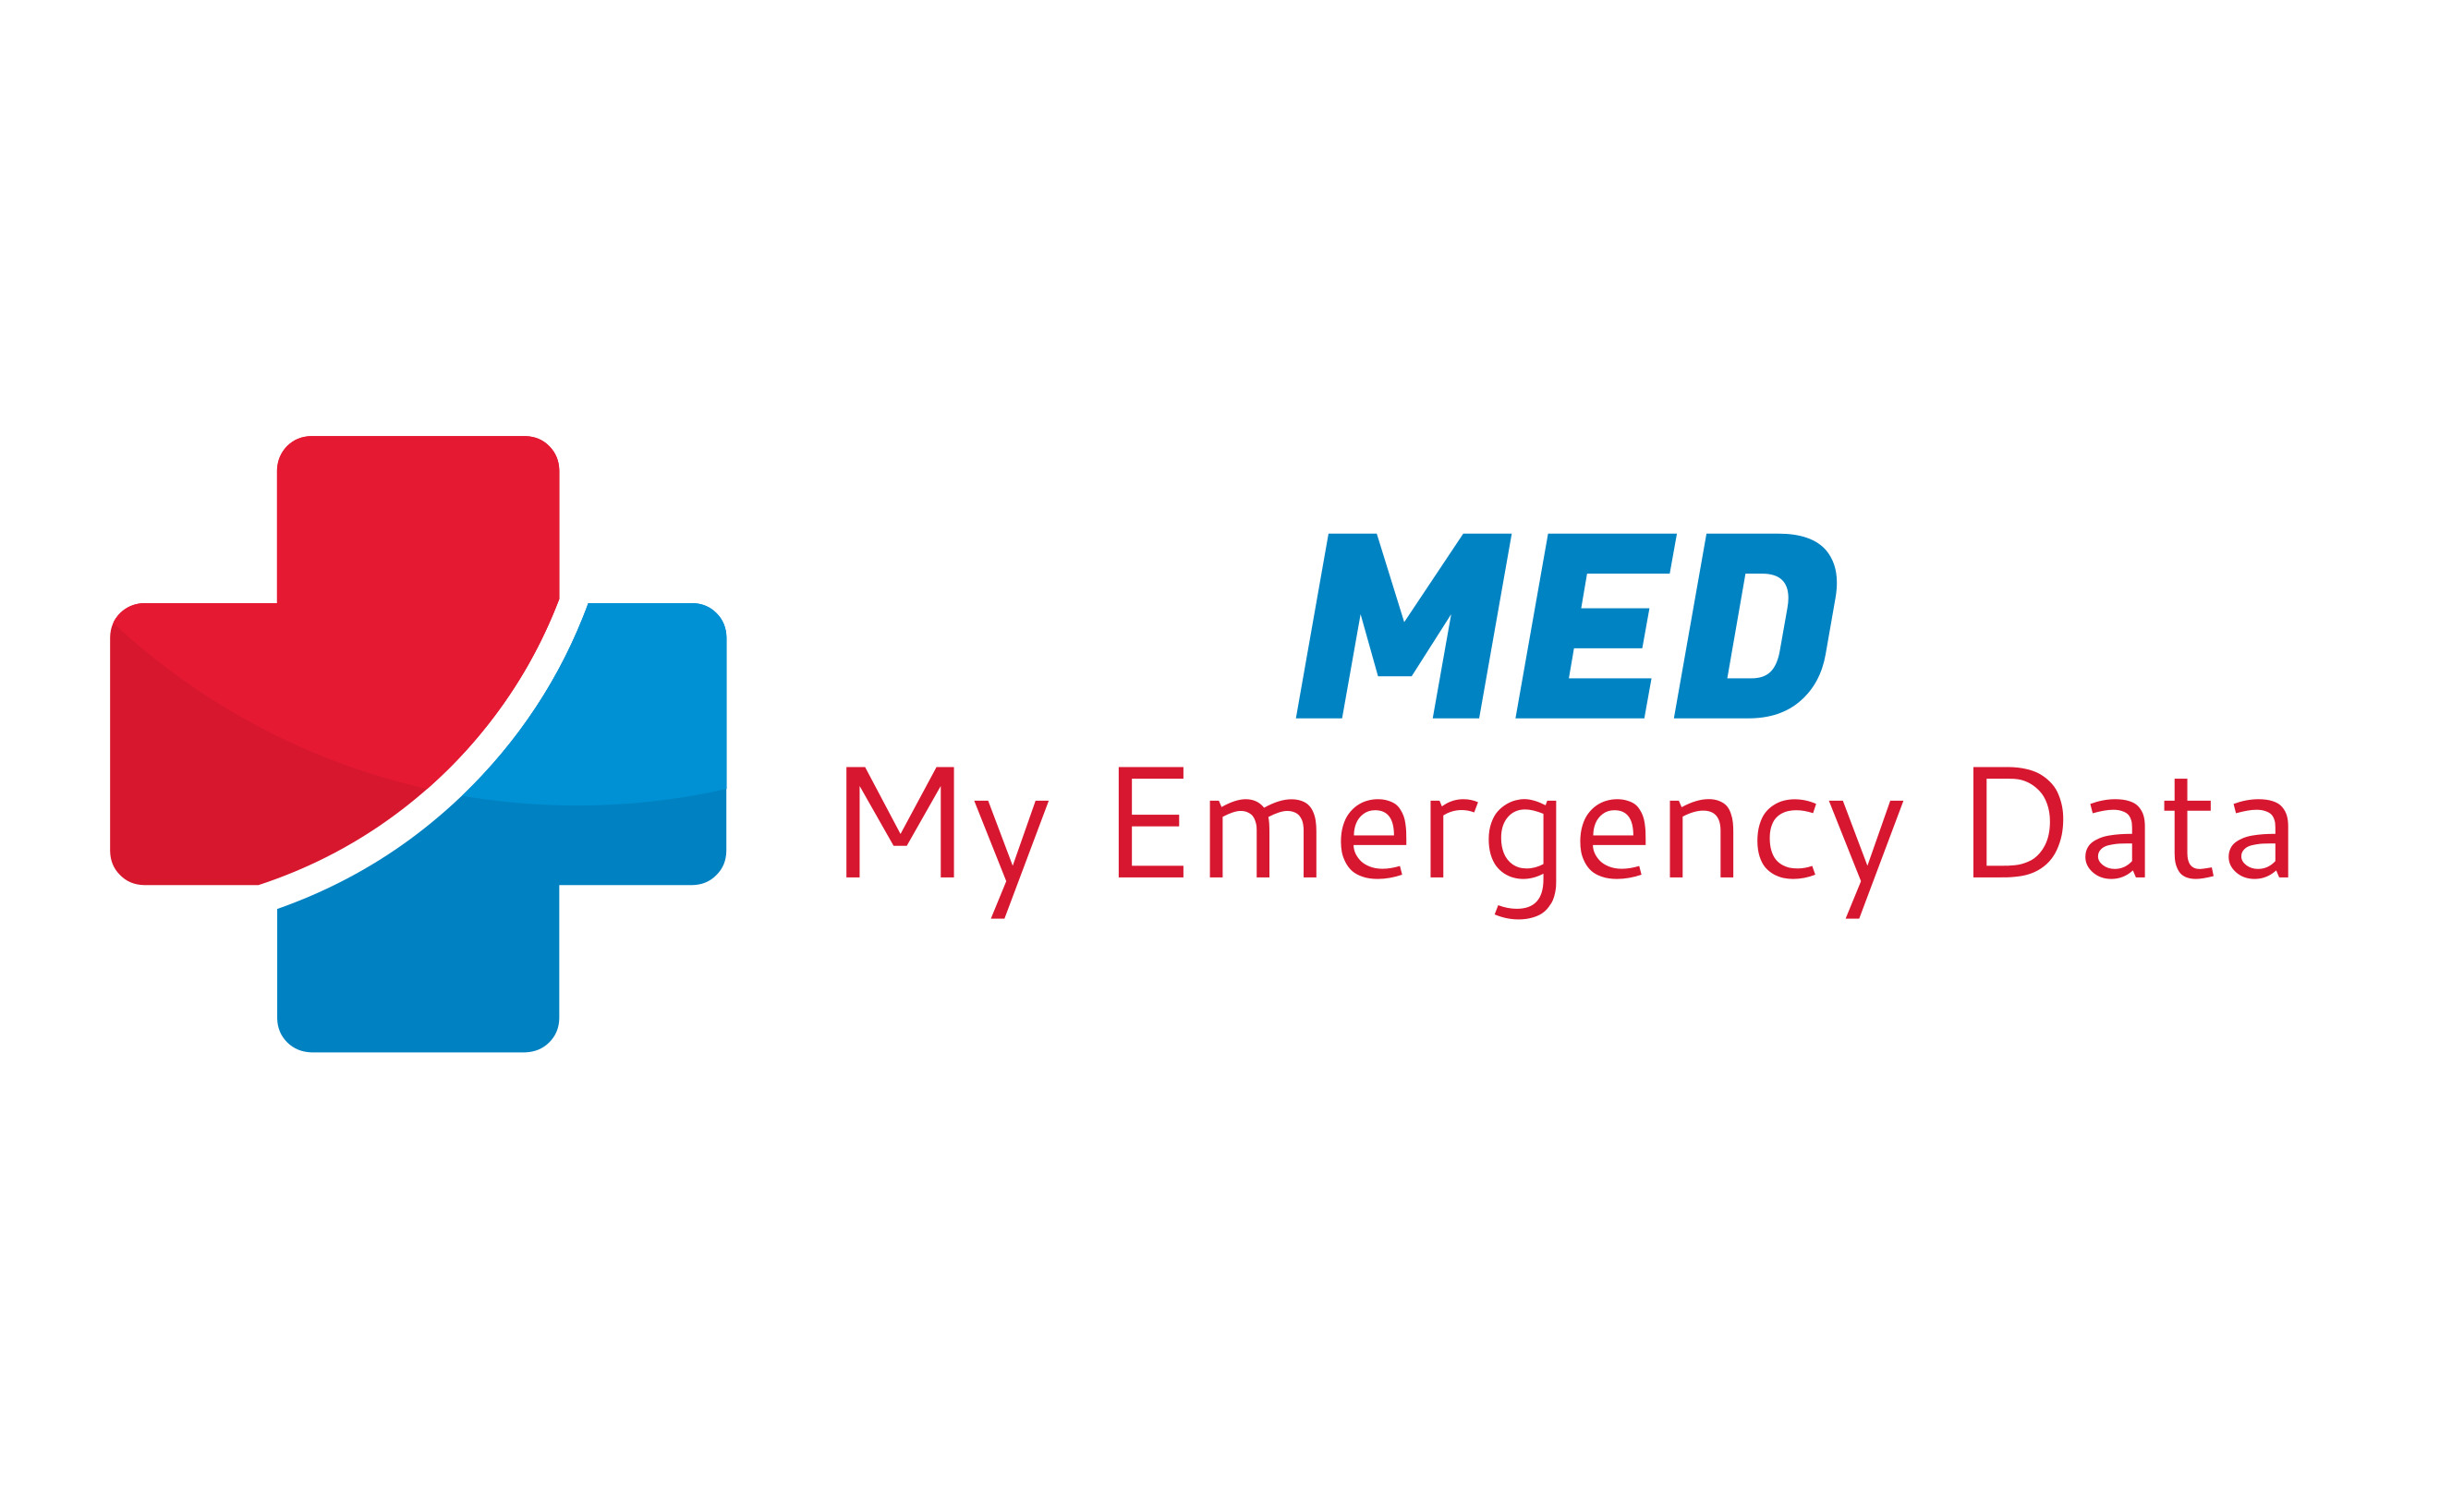 My Emergency Data Launches Wearable Medical Alert ID USB's to Help Save Lives